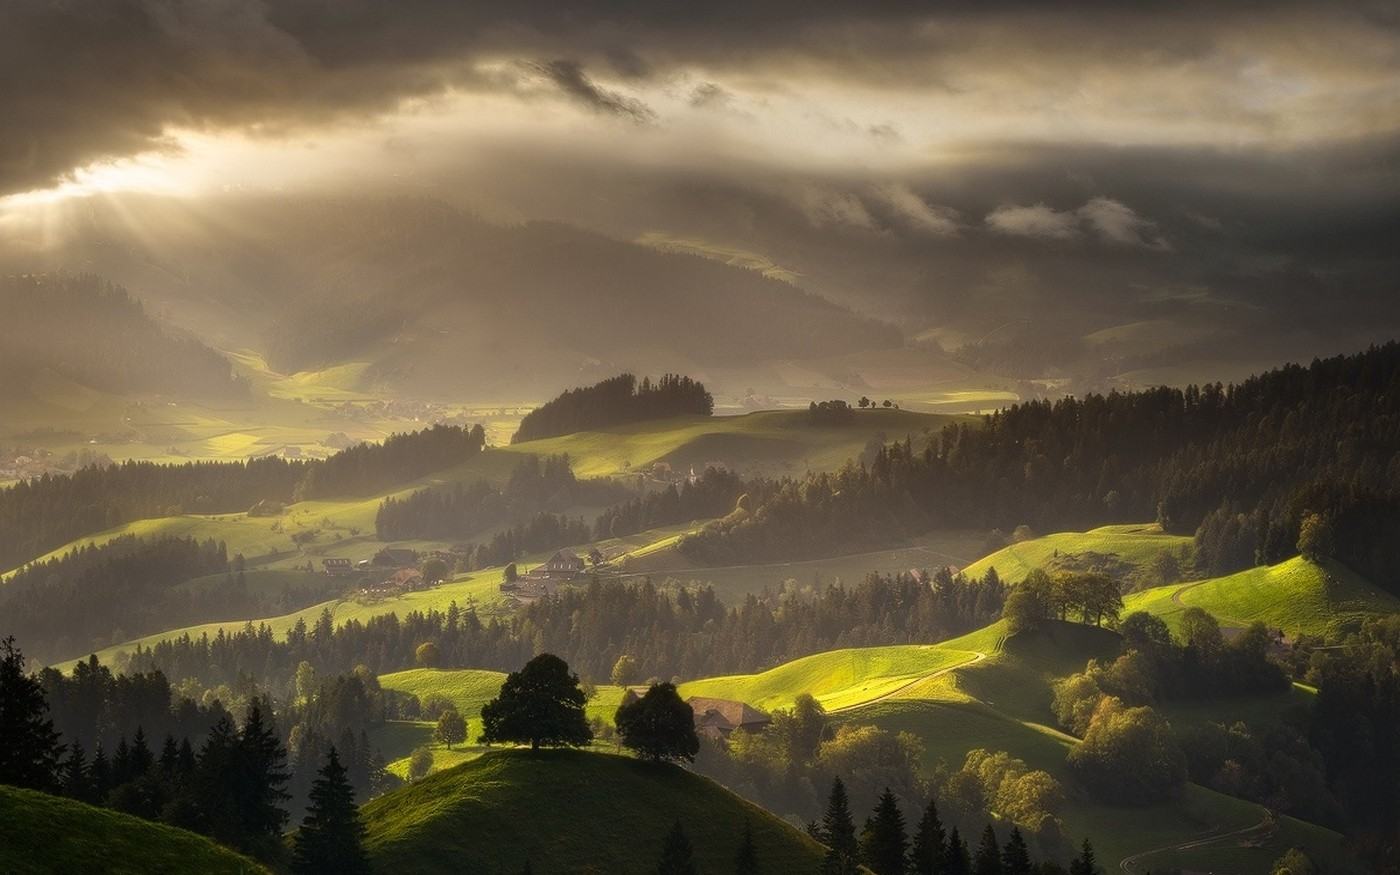 Animal Wallpaper Hd For Mobile Free Download Switzerland Landscape Forest Mist Nature Mountain